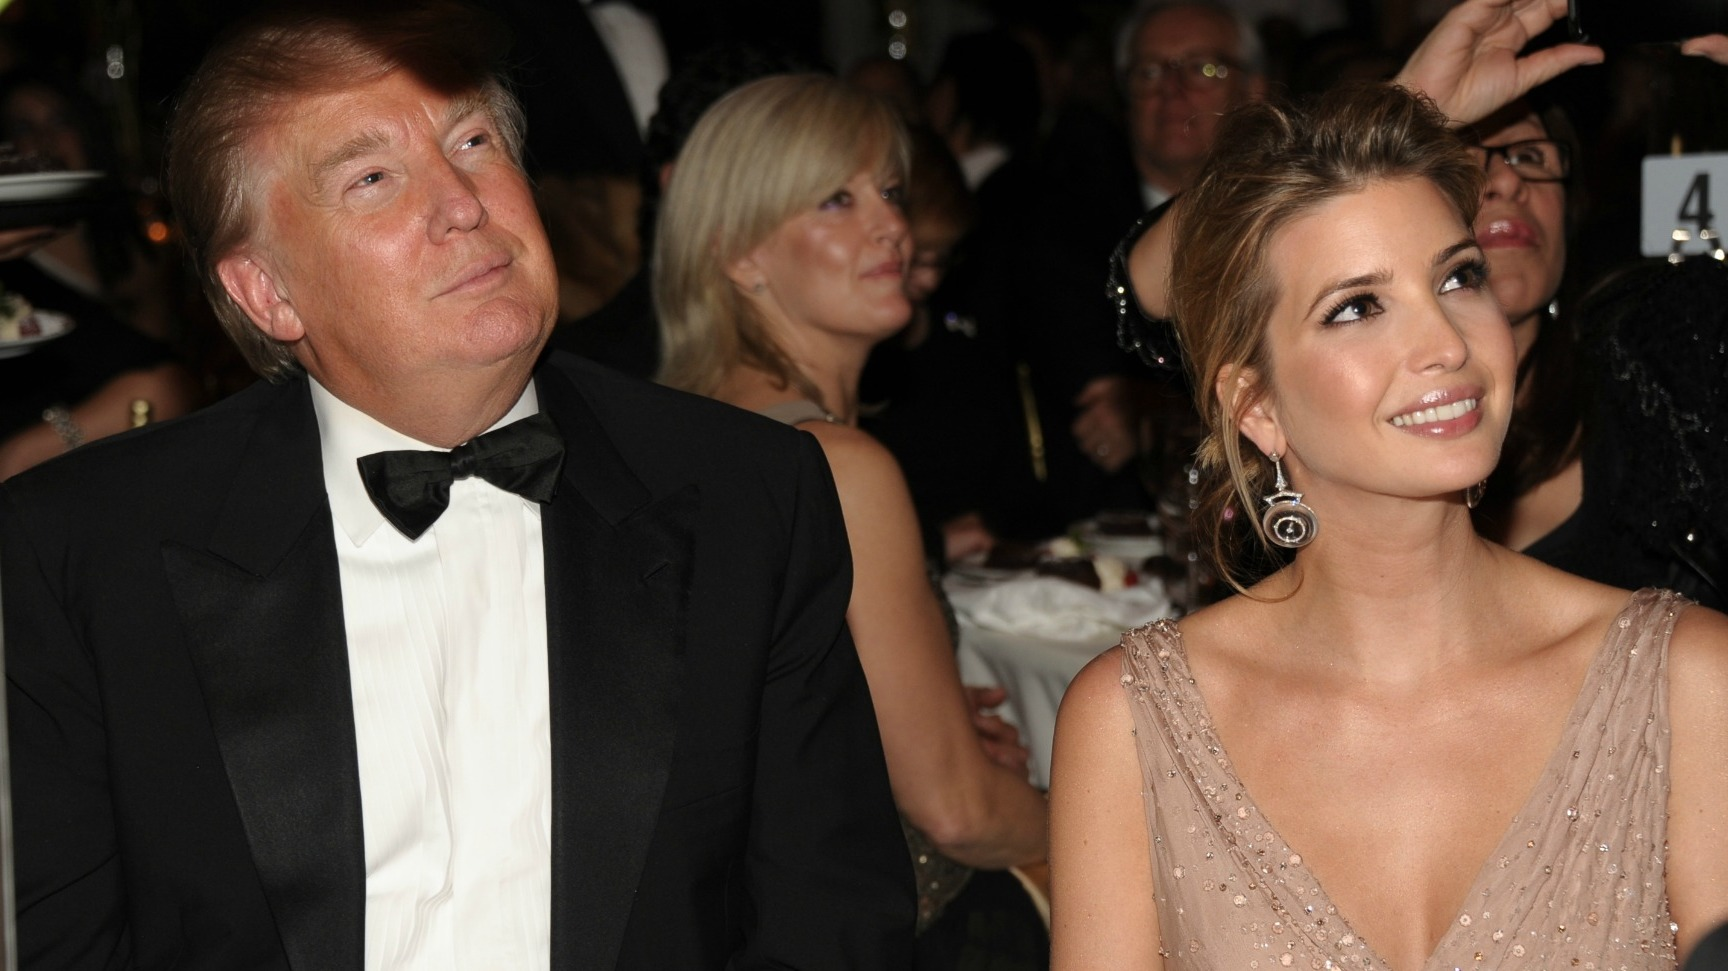 Donald Trump Talking About Ivanka In A Sexual Way Is